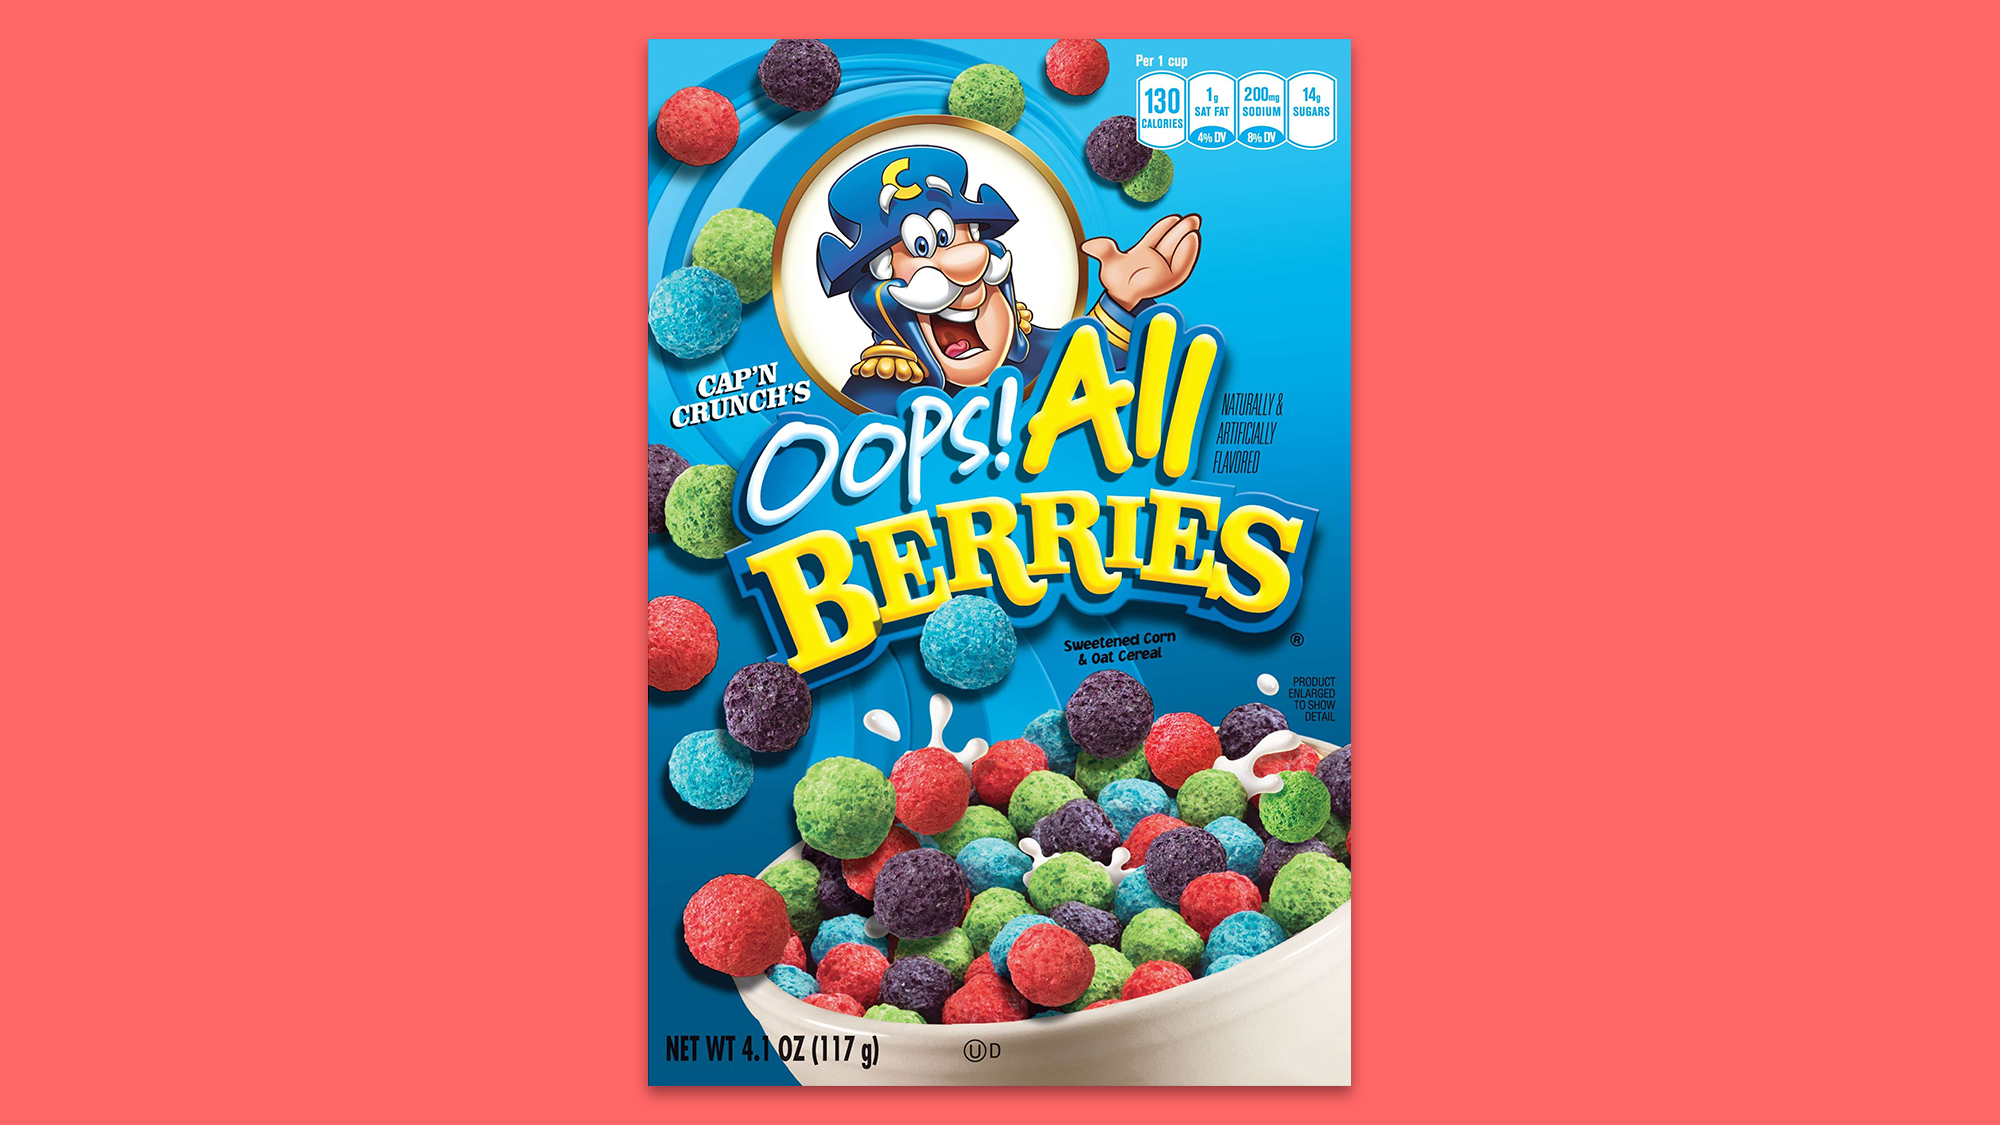 Disgusting Privilege Cap N Crunch Was Only Forgiven For The Oops All Berries Debacle Because He S A Straight White Man Clickhole Berry crunch vs cap n crunch which cereal is better must watch. disgusting privilege cap n crunch was